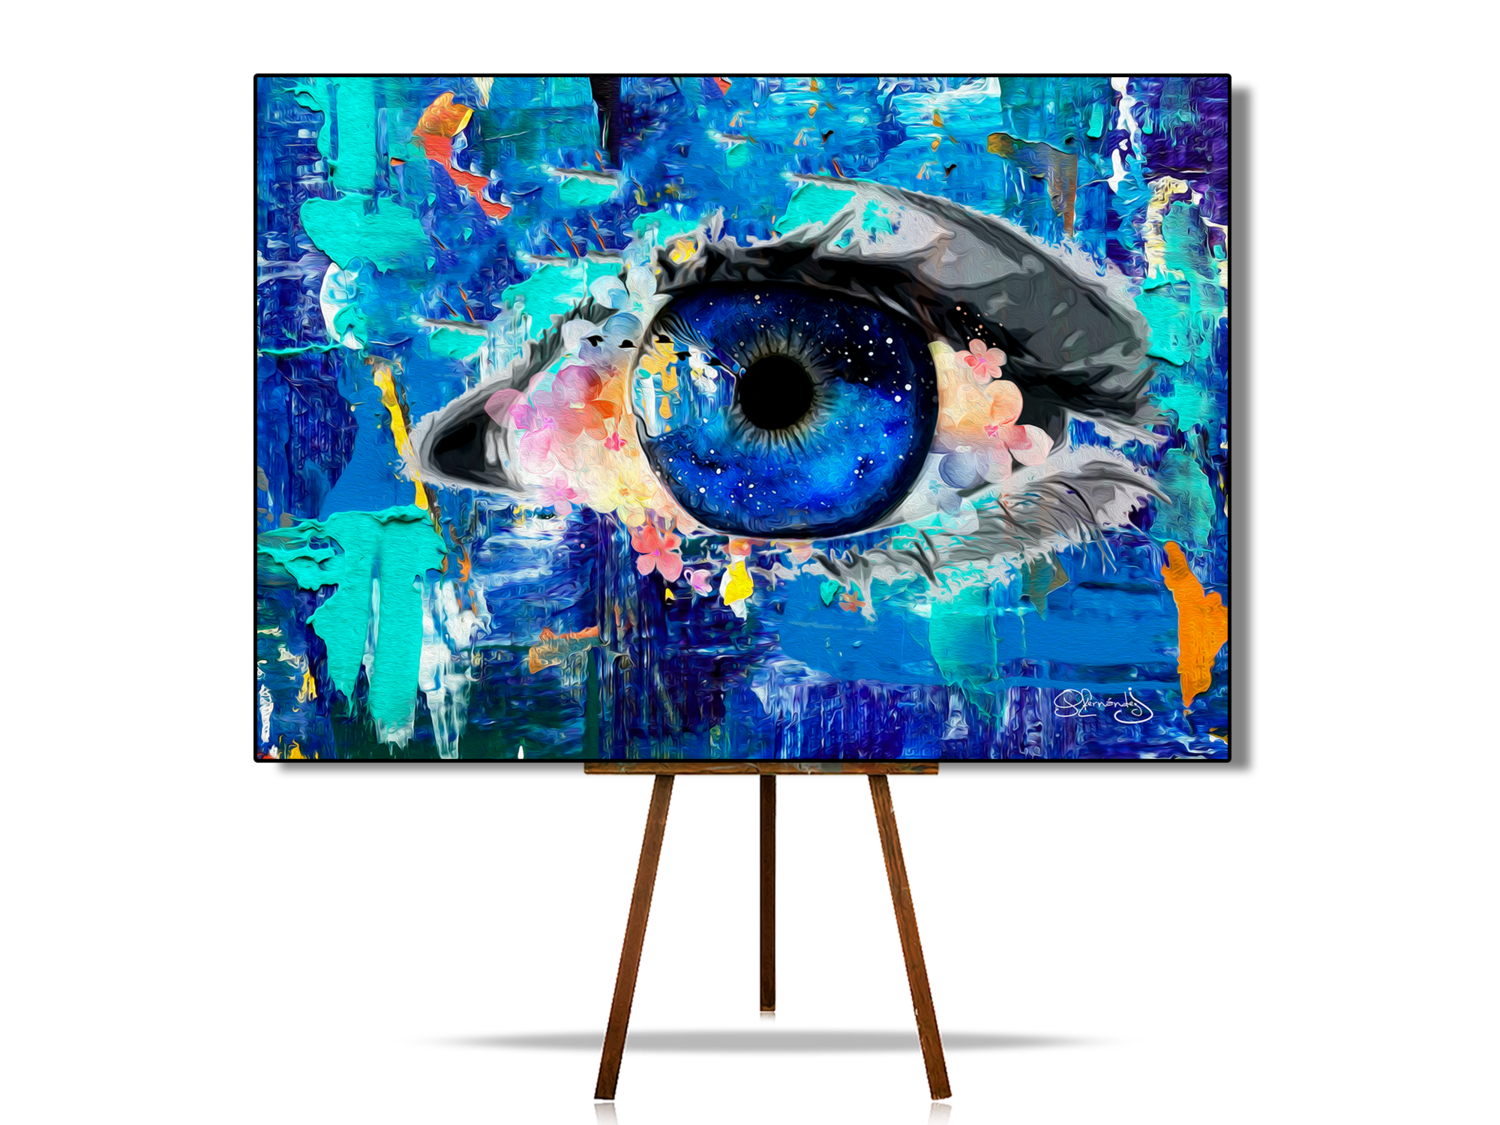 Abstract Home Decor Wall Art, Abstract Canvas Wall Art Prints, Affordable Canvas Art & Prints, Abstract Painting, Abstract Art, Contemporary Art, Canvas Prints, Abstract Canvas Art Ideas.